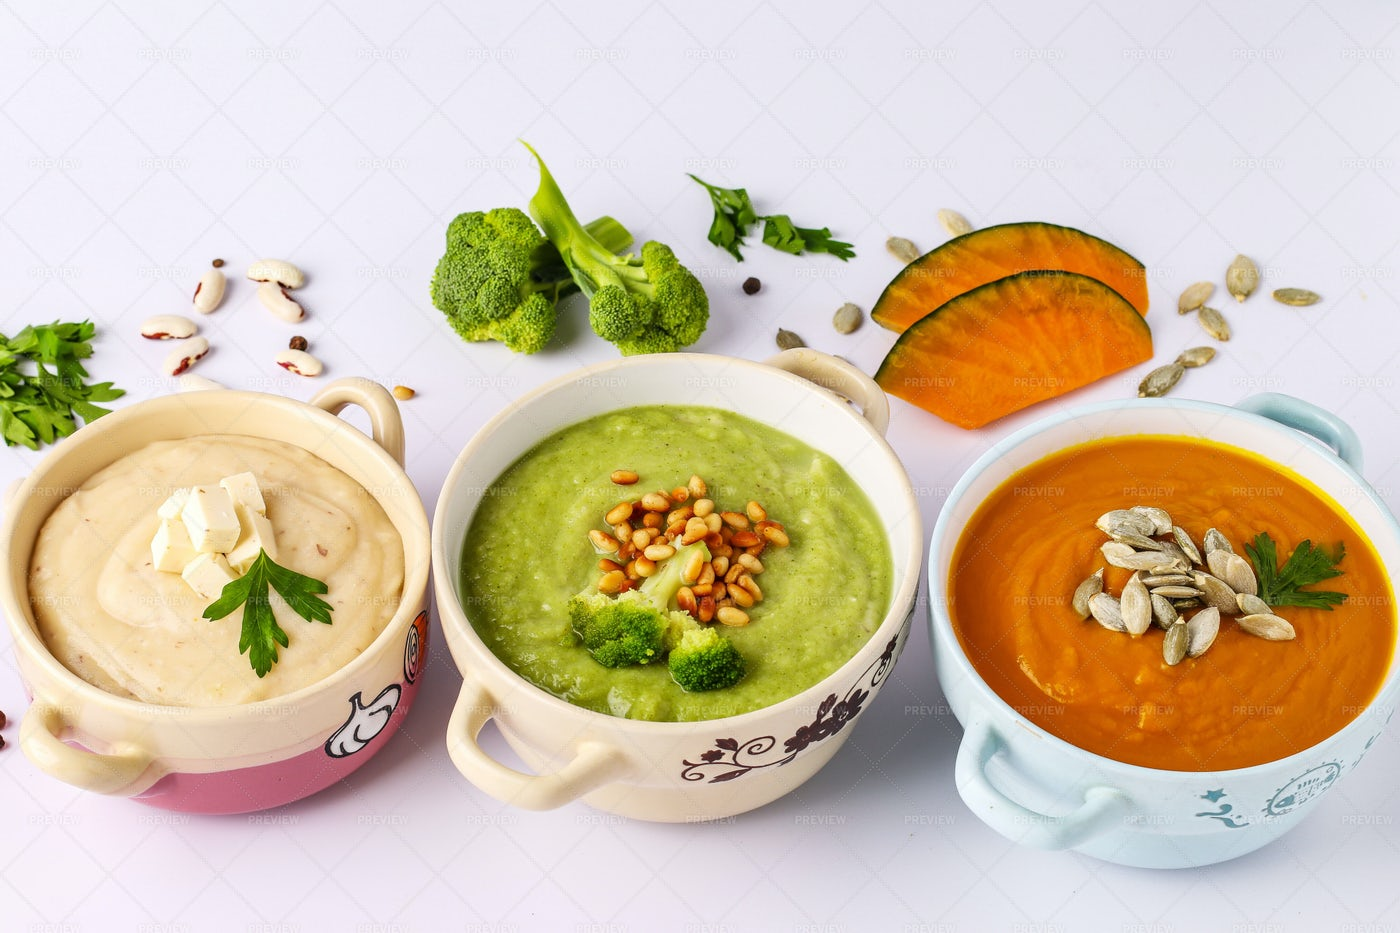 Variety Of Vegetables Cream Soups: Stock Photos